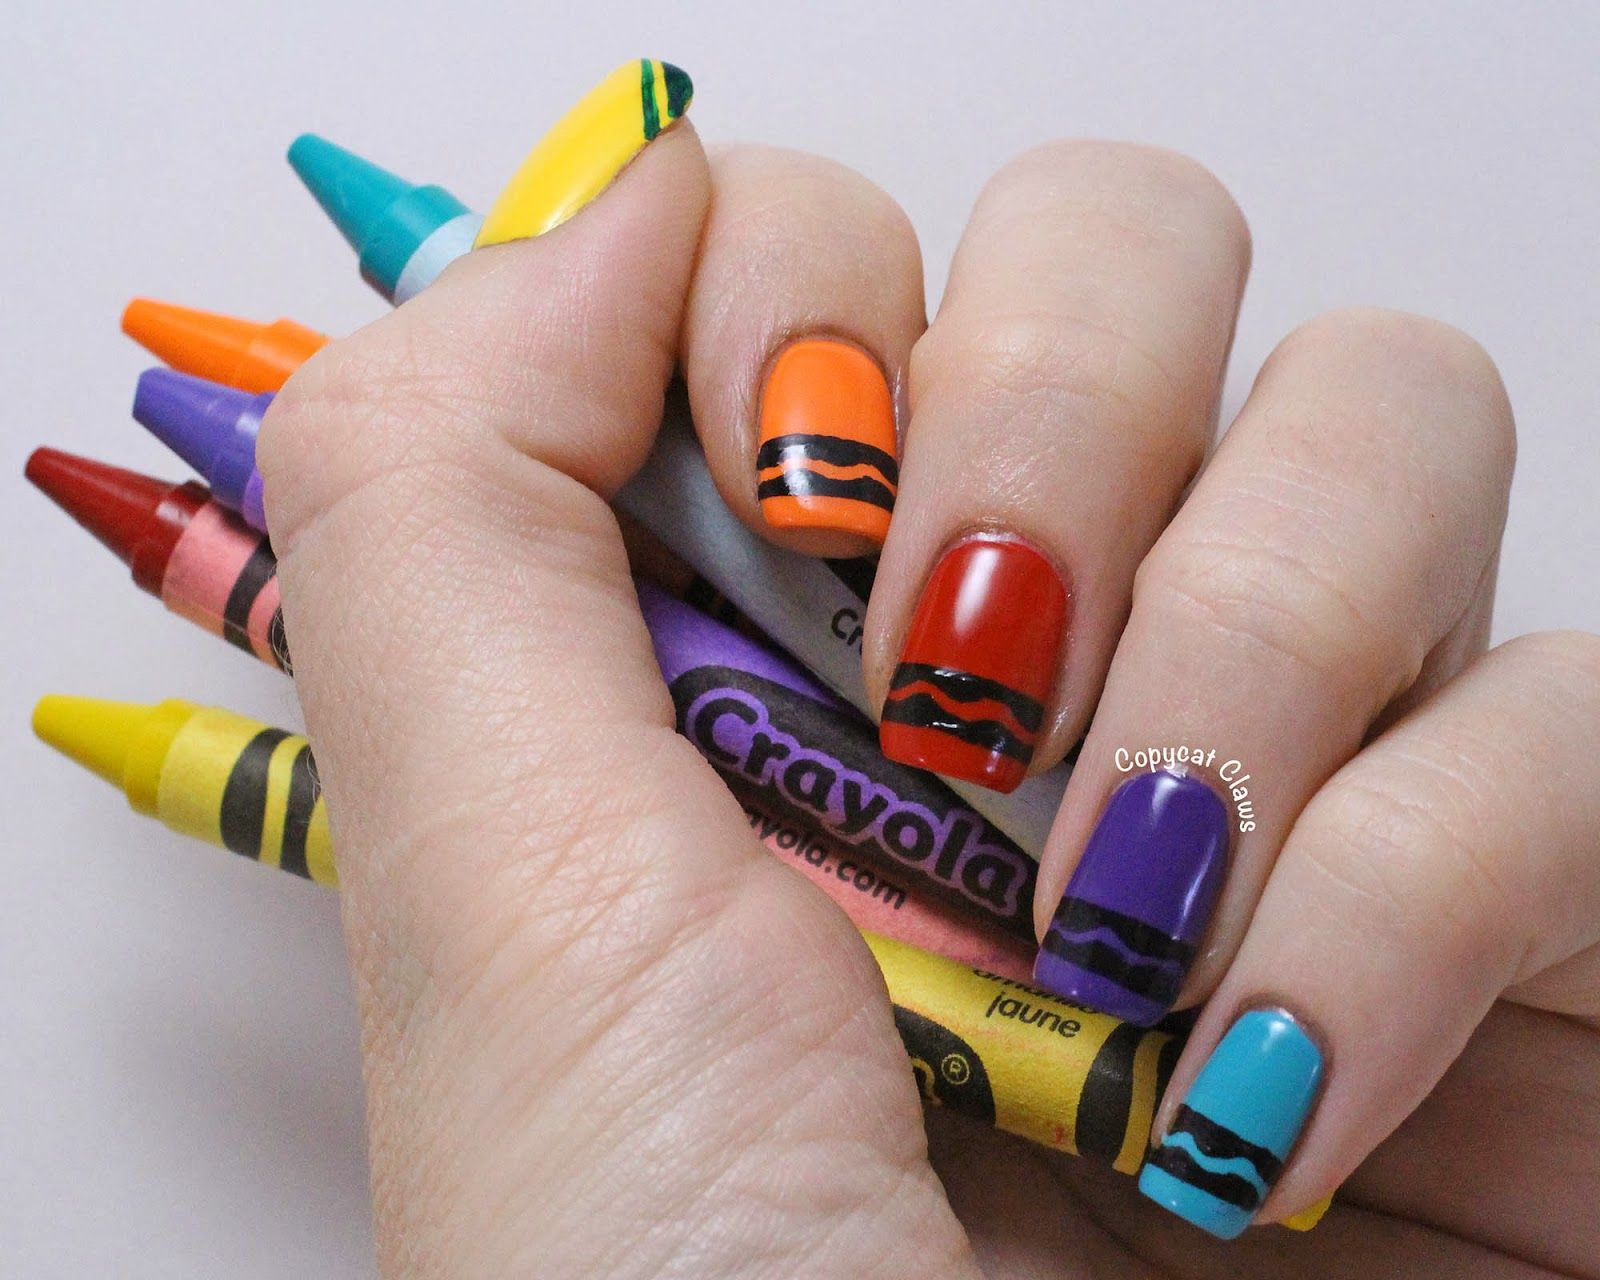 Copycat Claws Crayon Nail Art School Designs Pinterest